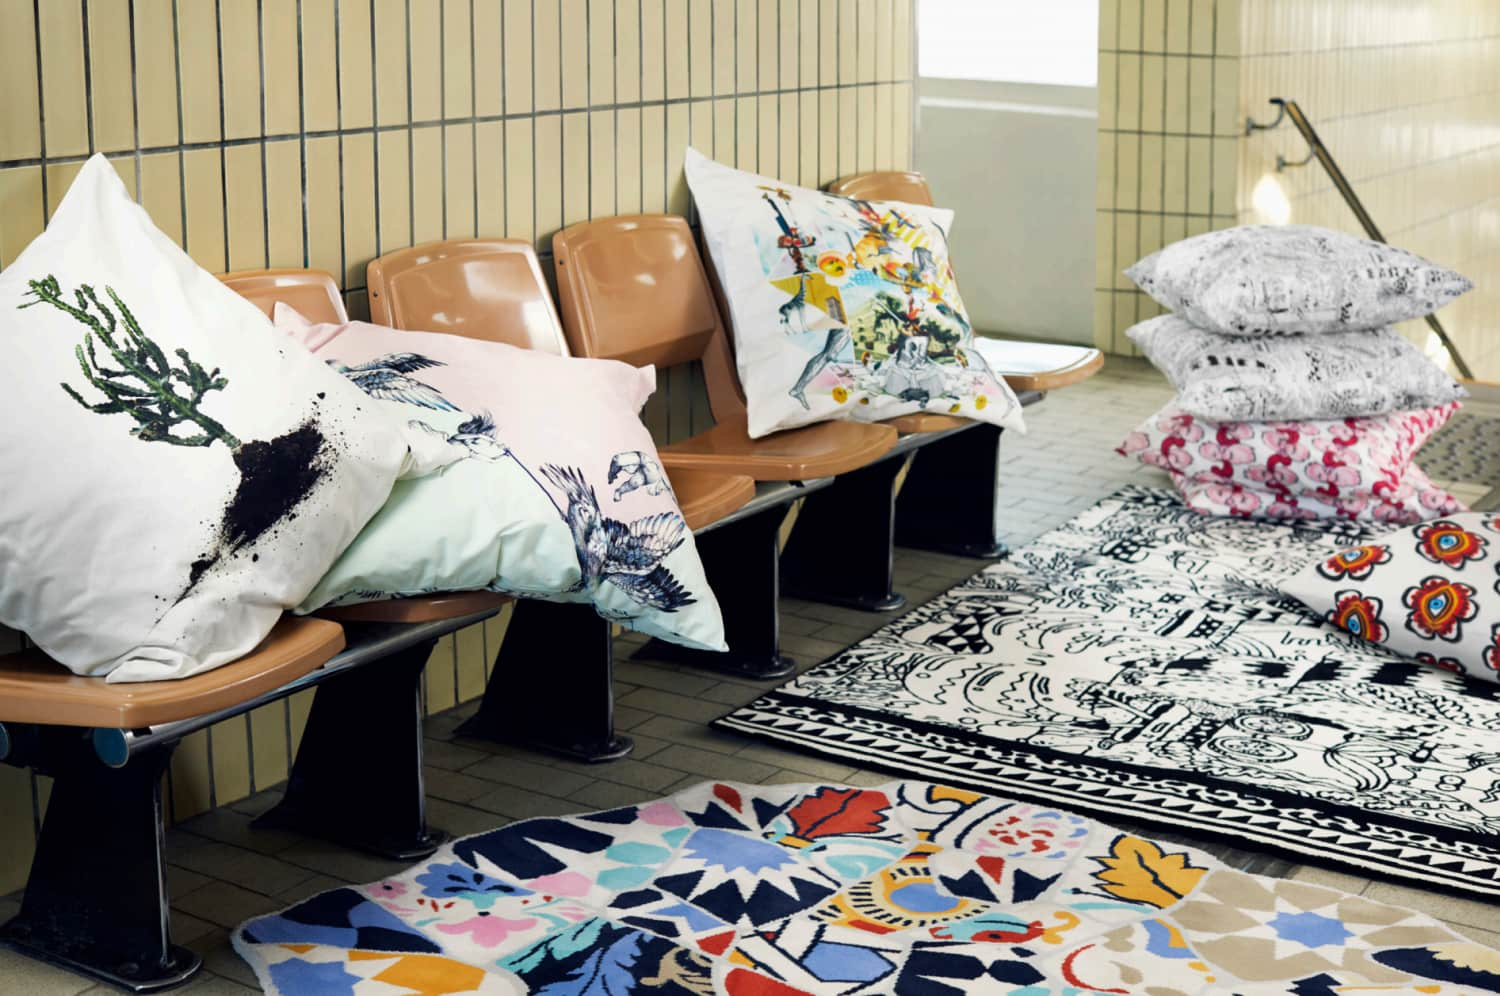 IKEA's New Limited Edition Collection Is For People Who Aren't Afraid of Pattern